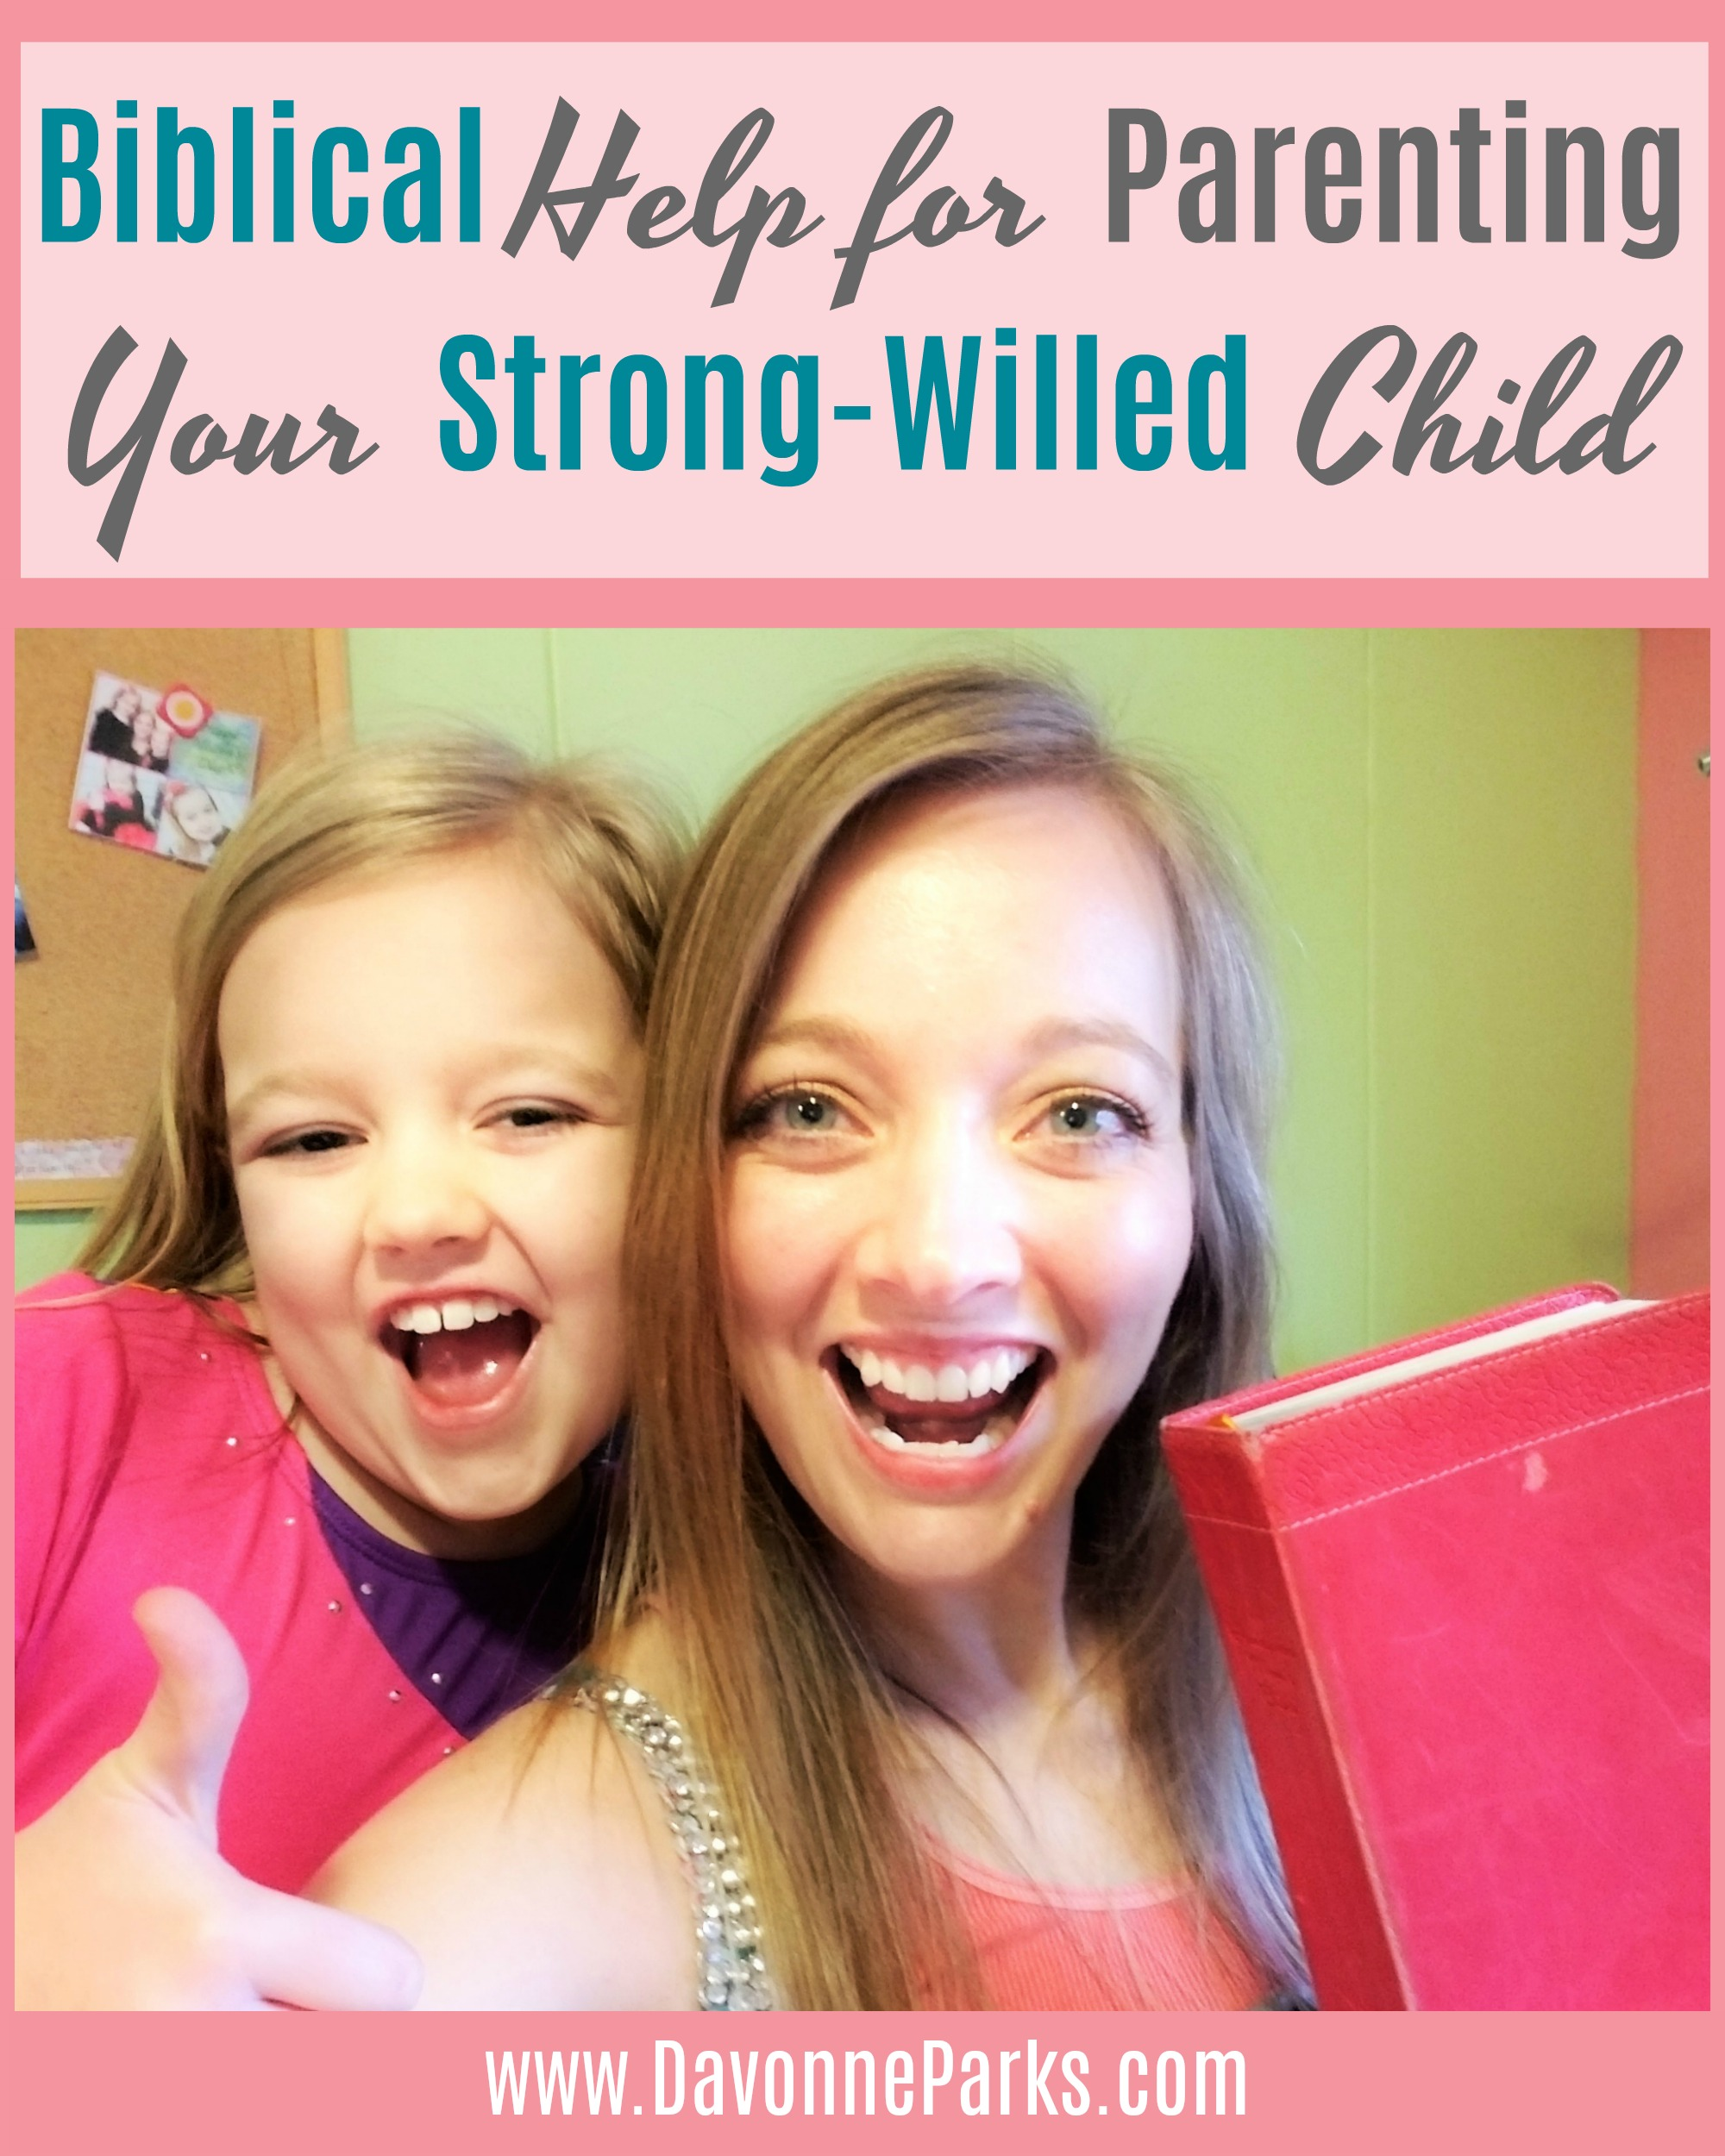 Moms of Strong-Willed Kids, Take Heart!